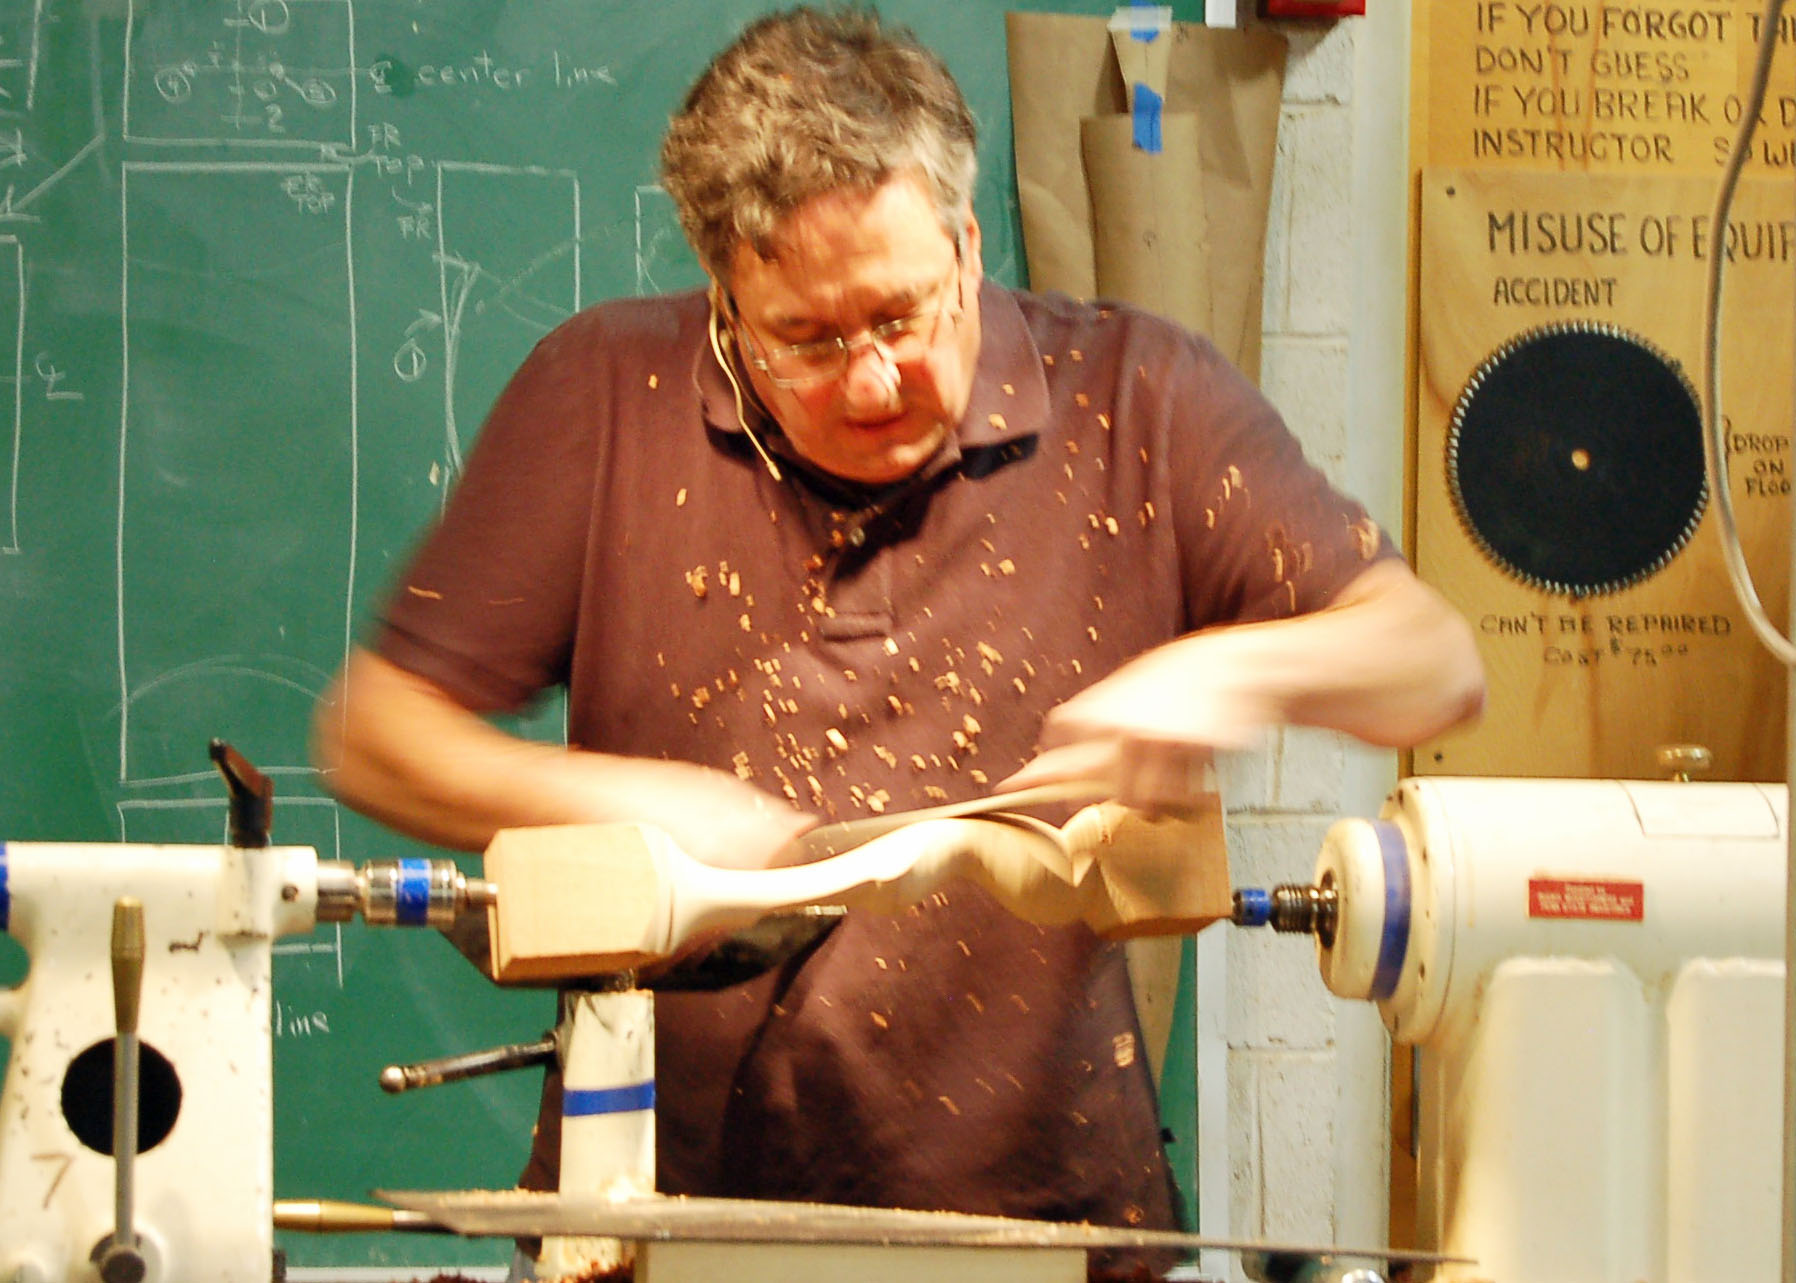 The lathe makes a good vise for holding your work.